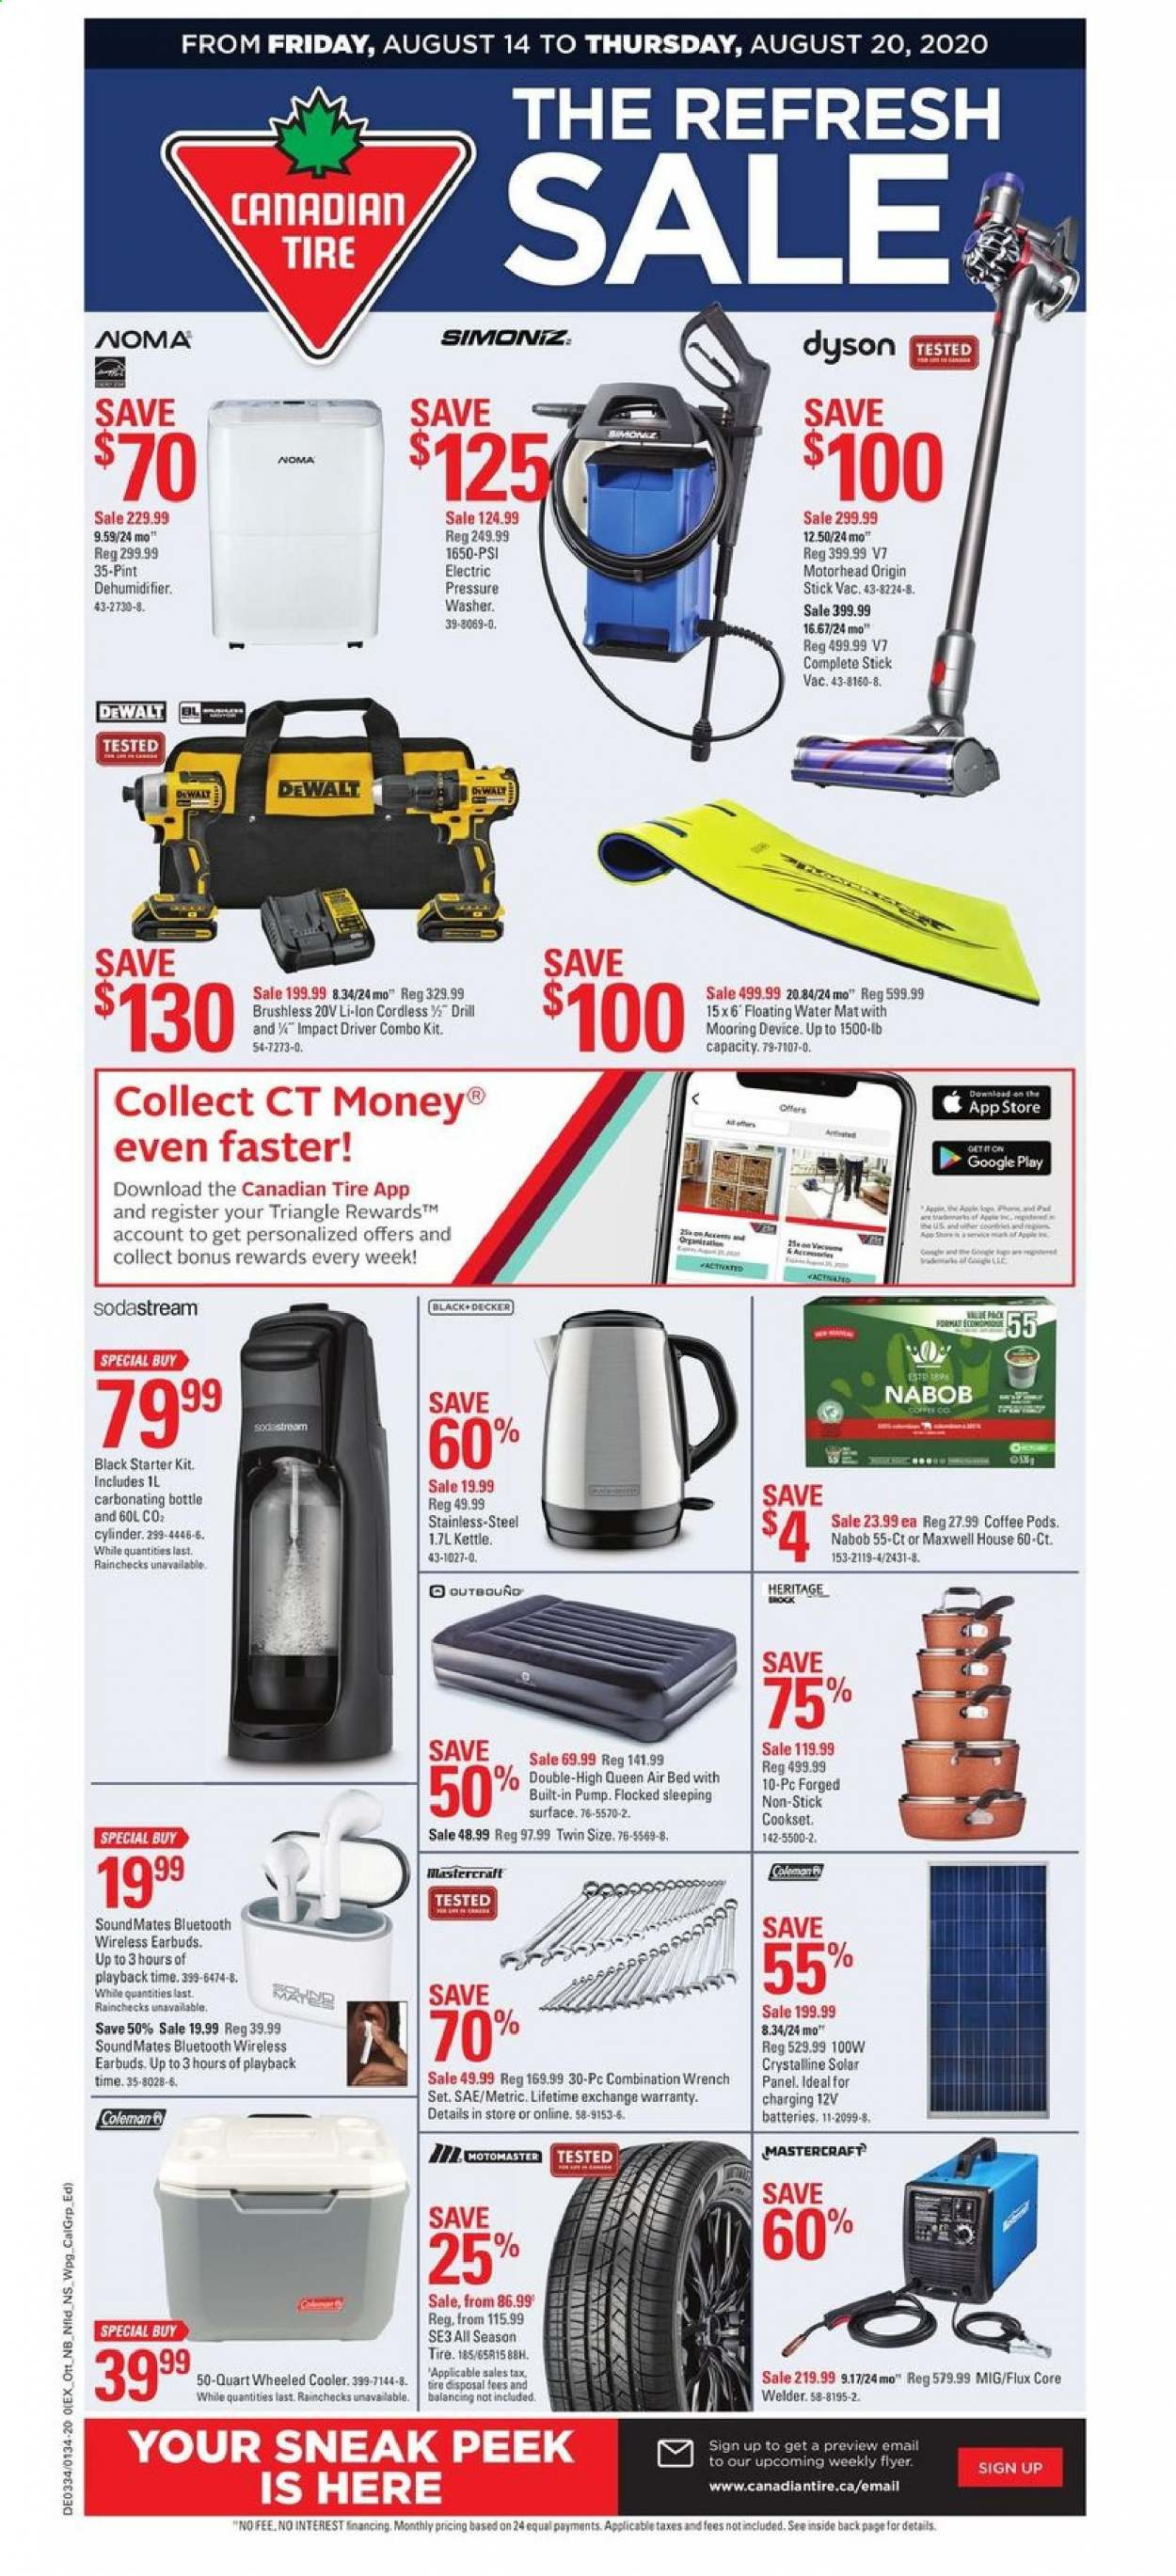 Circulaire Canadian Tire - 14 Août 2020 - 20 Août 2020 - Produits soldés - battery, bed, bluetooth, bottle, coffee pods, dewalt, drill, electric pressure washer, google, mat, maxwell house, surface, washer, wheeled cooler, impact driver, wireless, wrench, cooler, combo kit, dyson, triangle. Page 1.